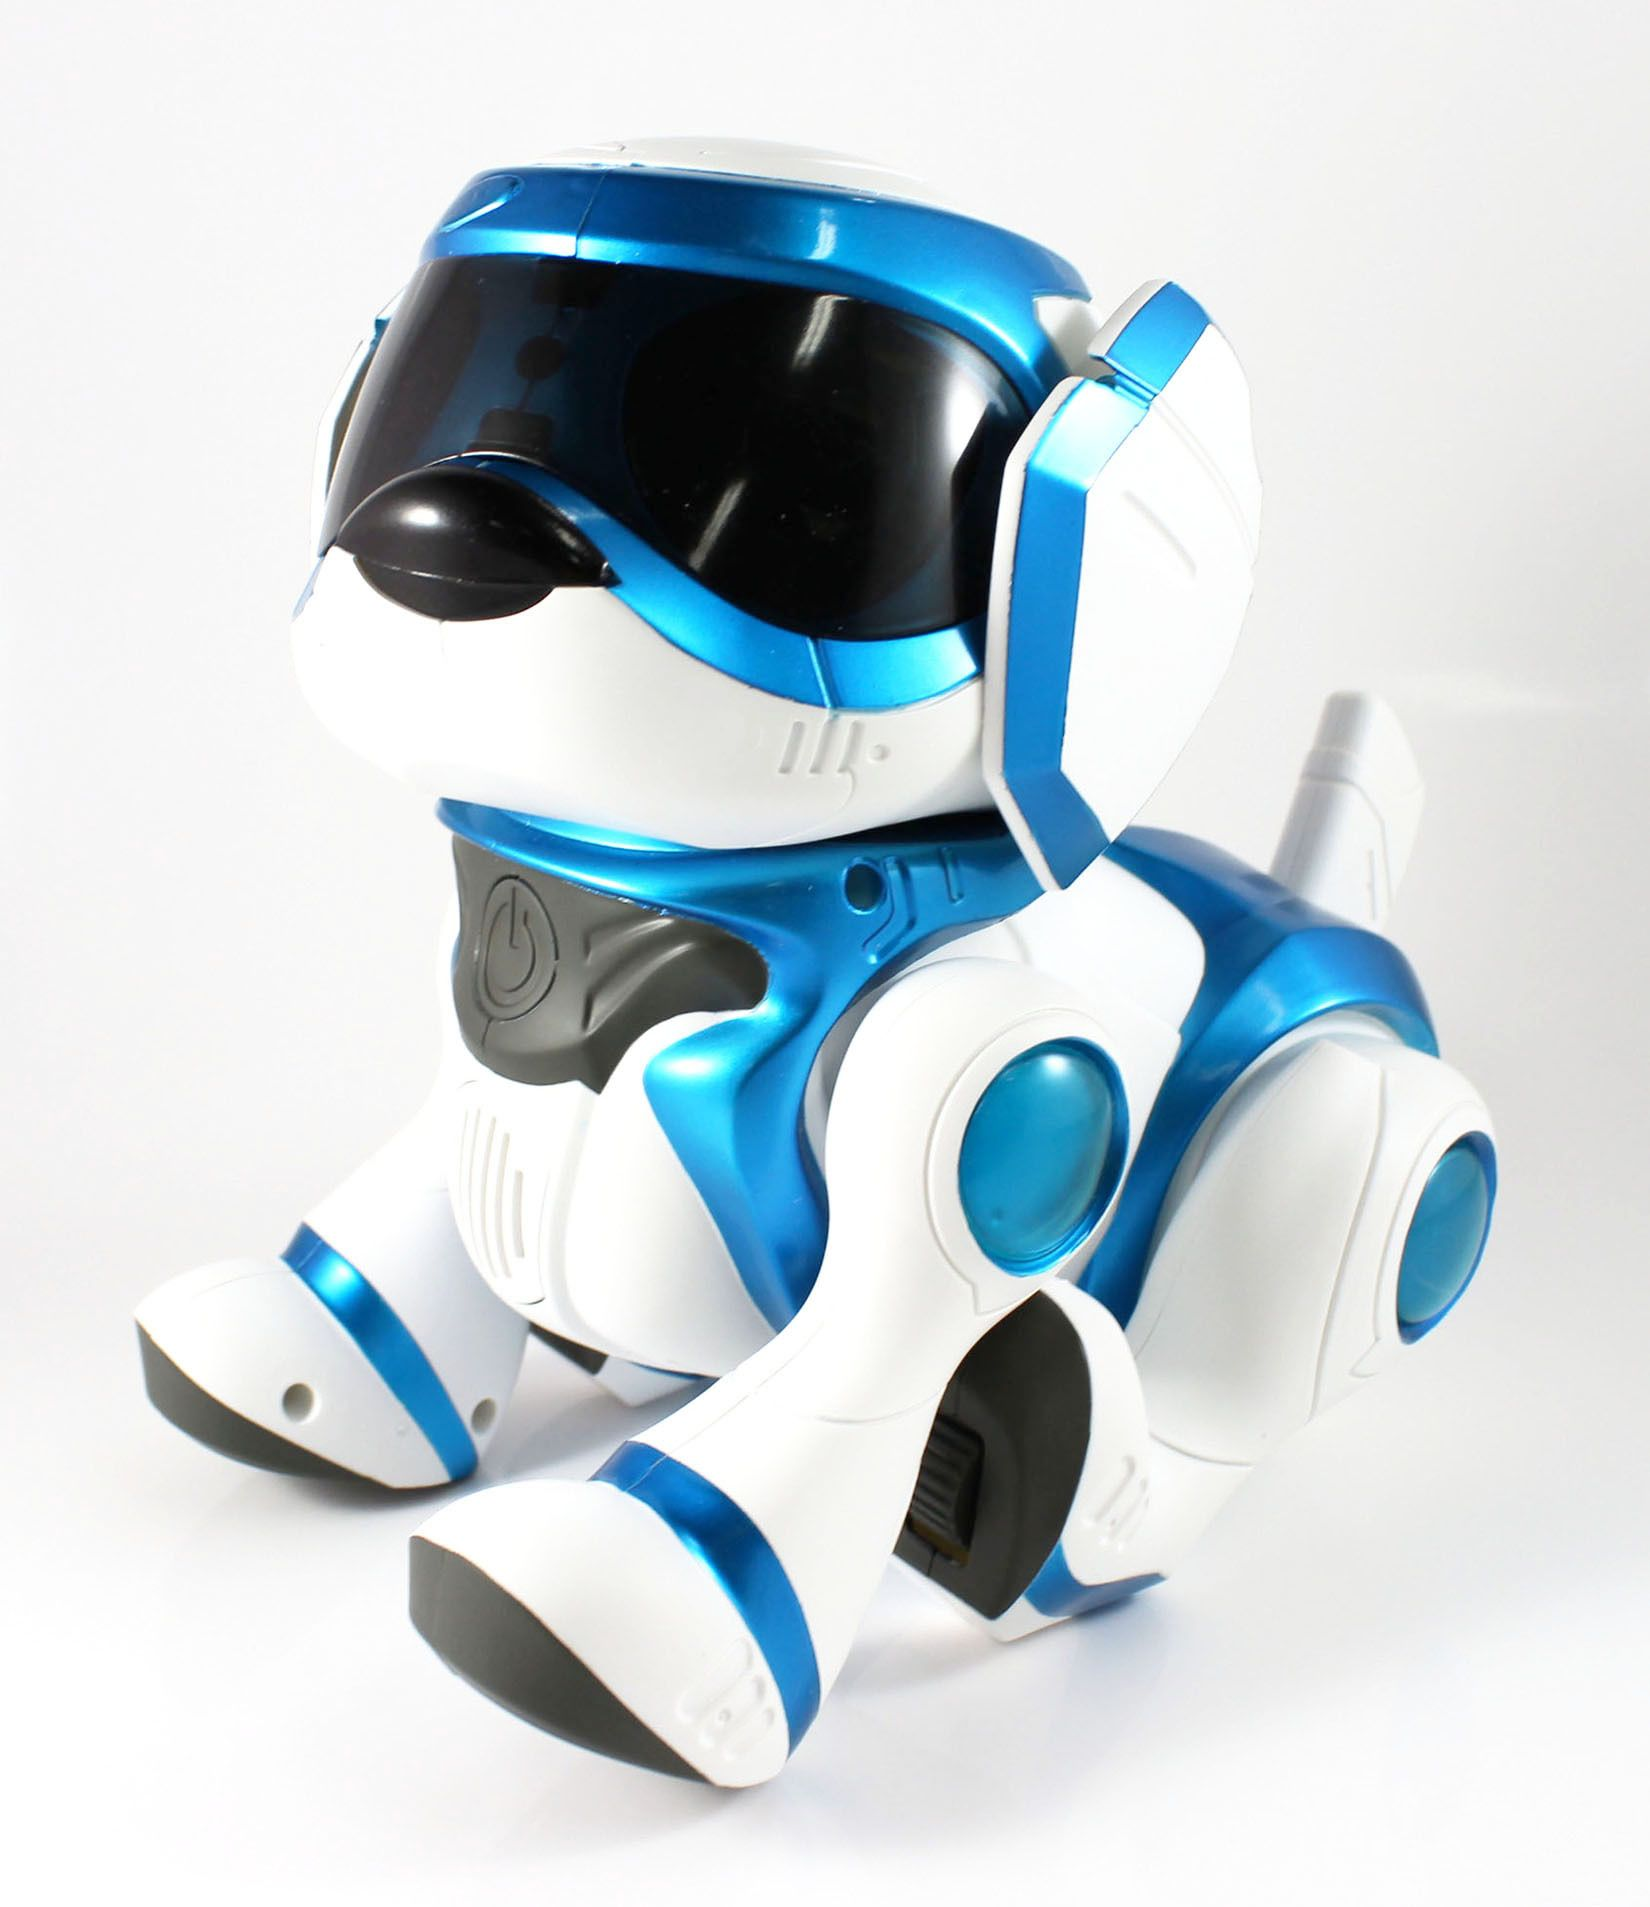 Tekno The Robotic Puppy Puppies Crazy Friends Dog Toys